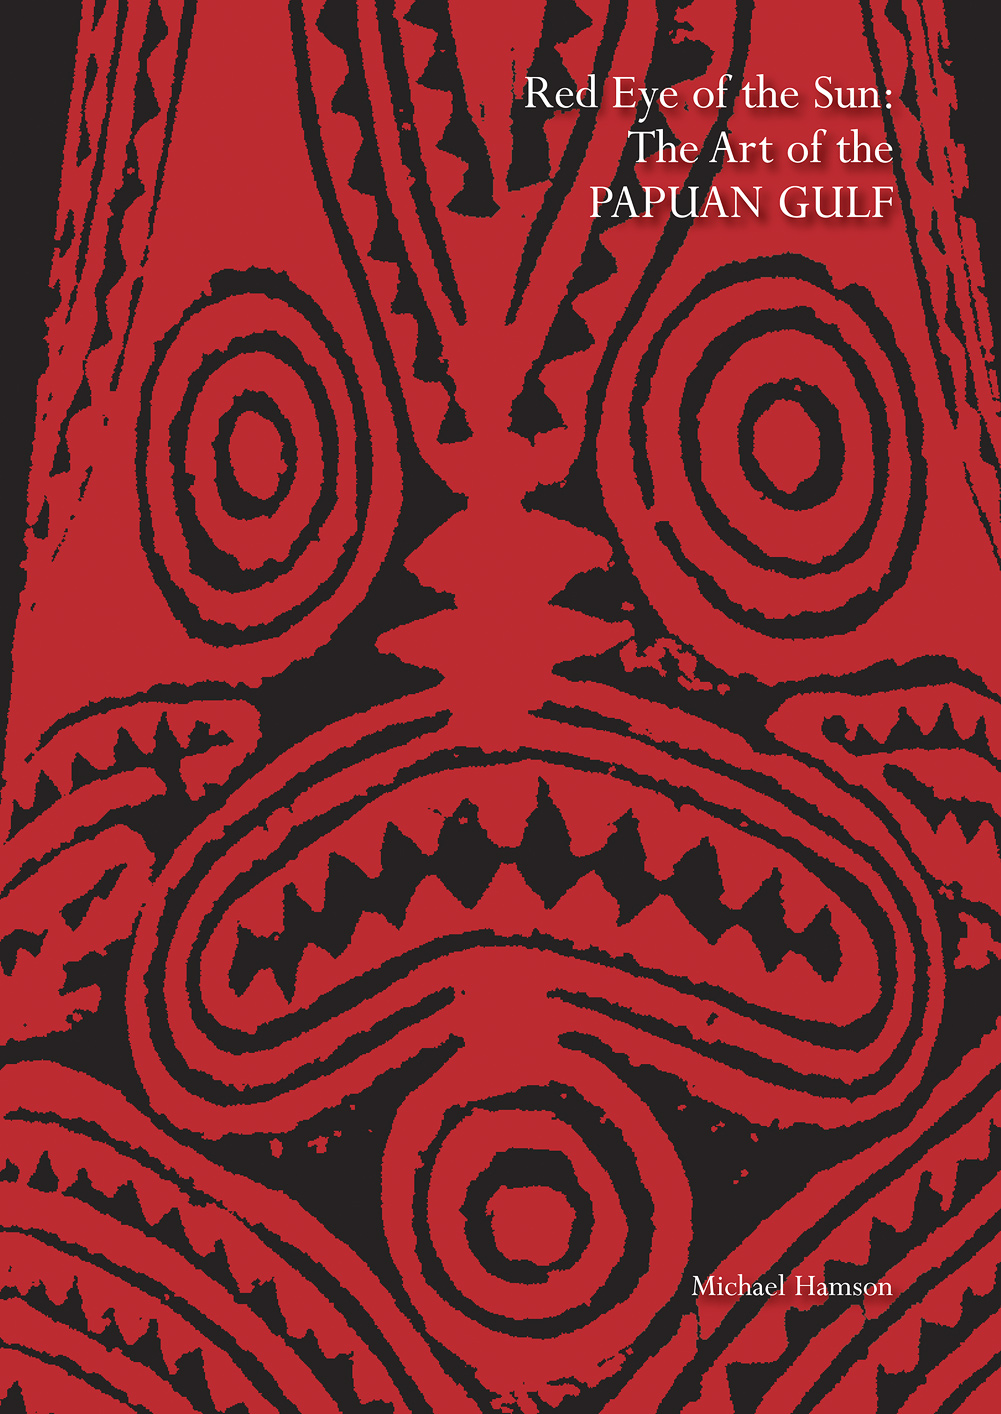 Michael Hamson Publications | Red Eye of the Sun: The Art of the Papuan Gulf